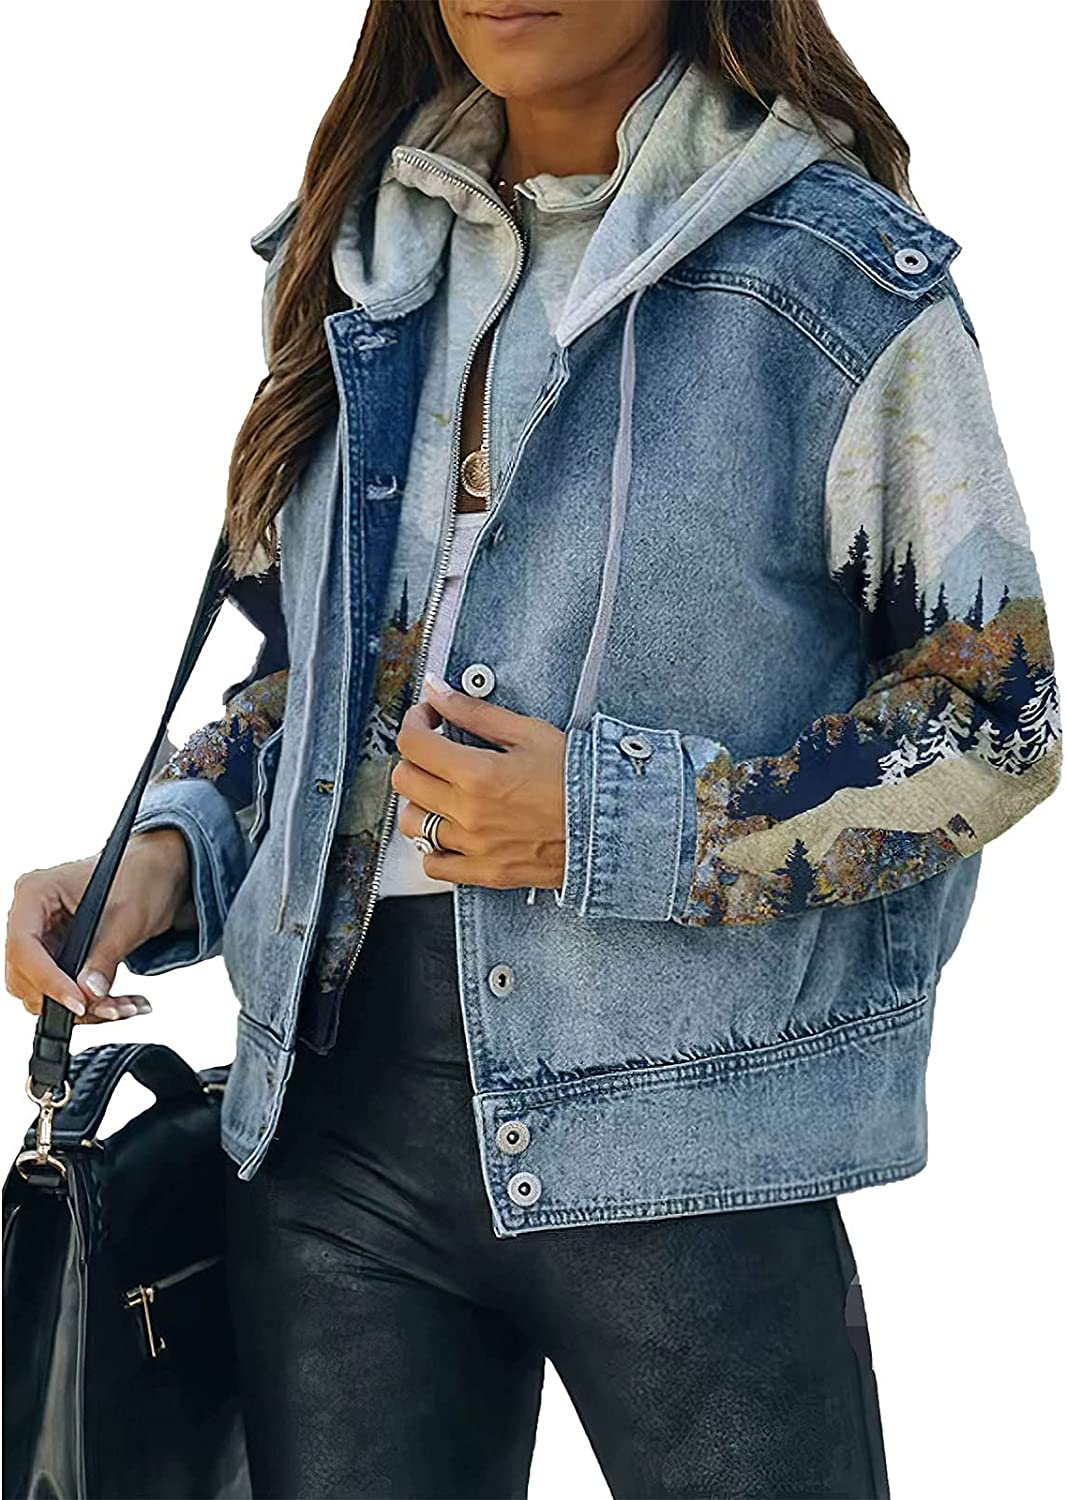 Women's Aztec Patchwork Hooded Denim Jacket Fashion Casual Plus Size Cropped Jean Jackets for Women